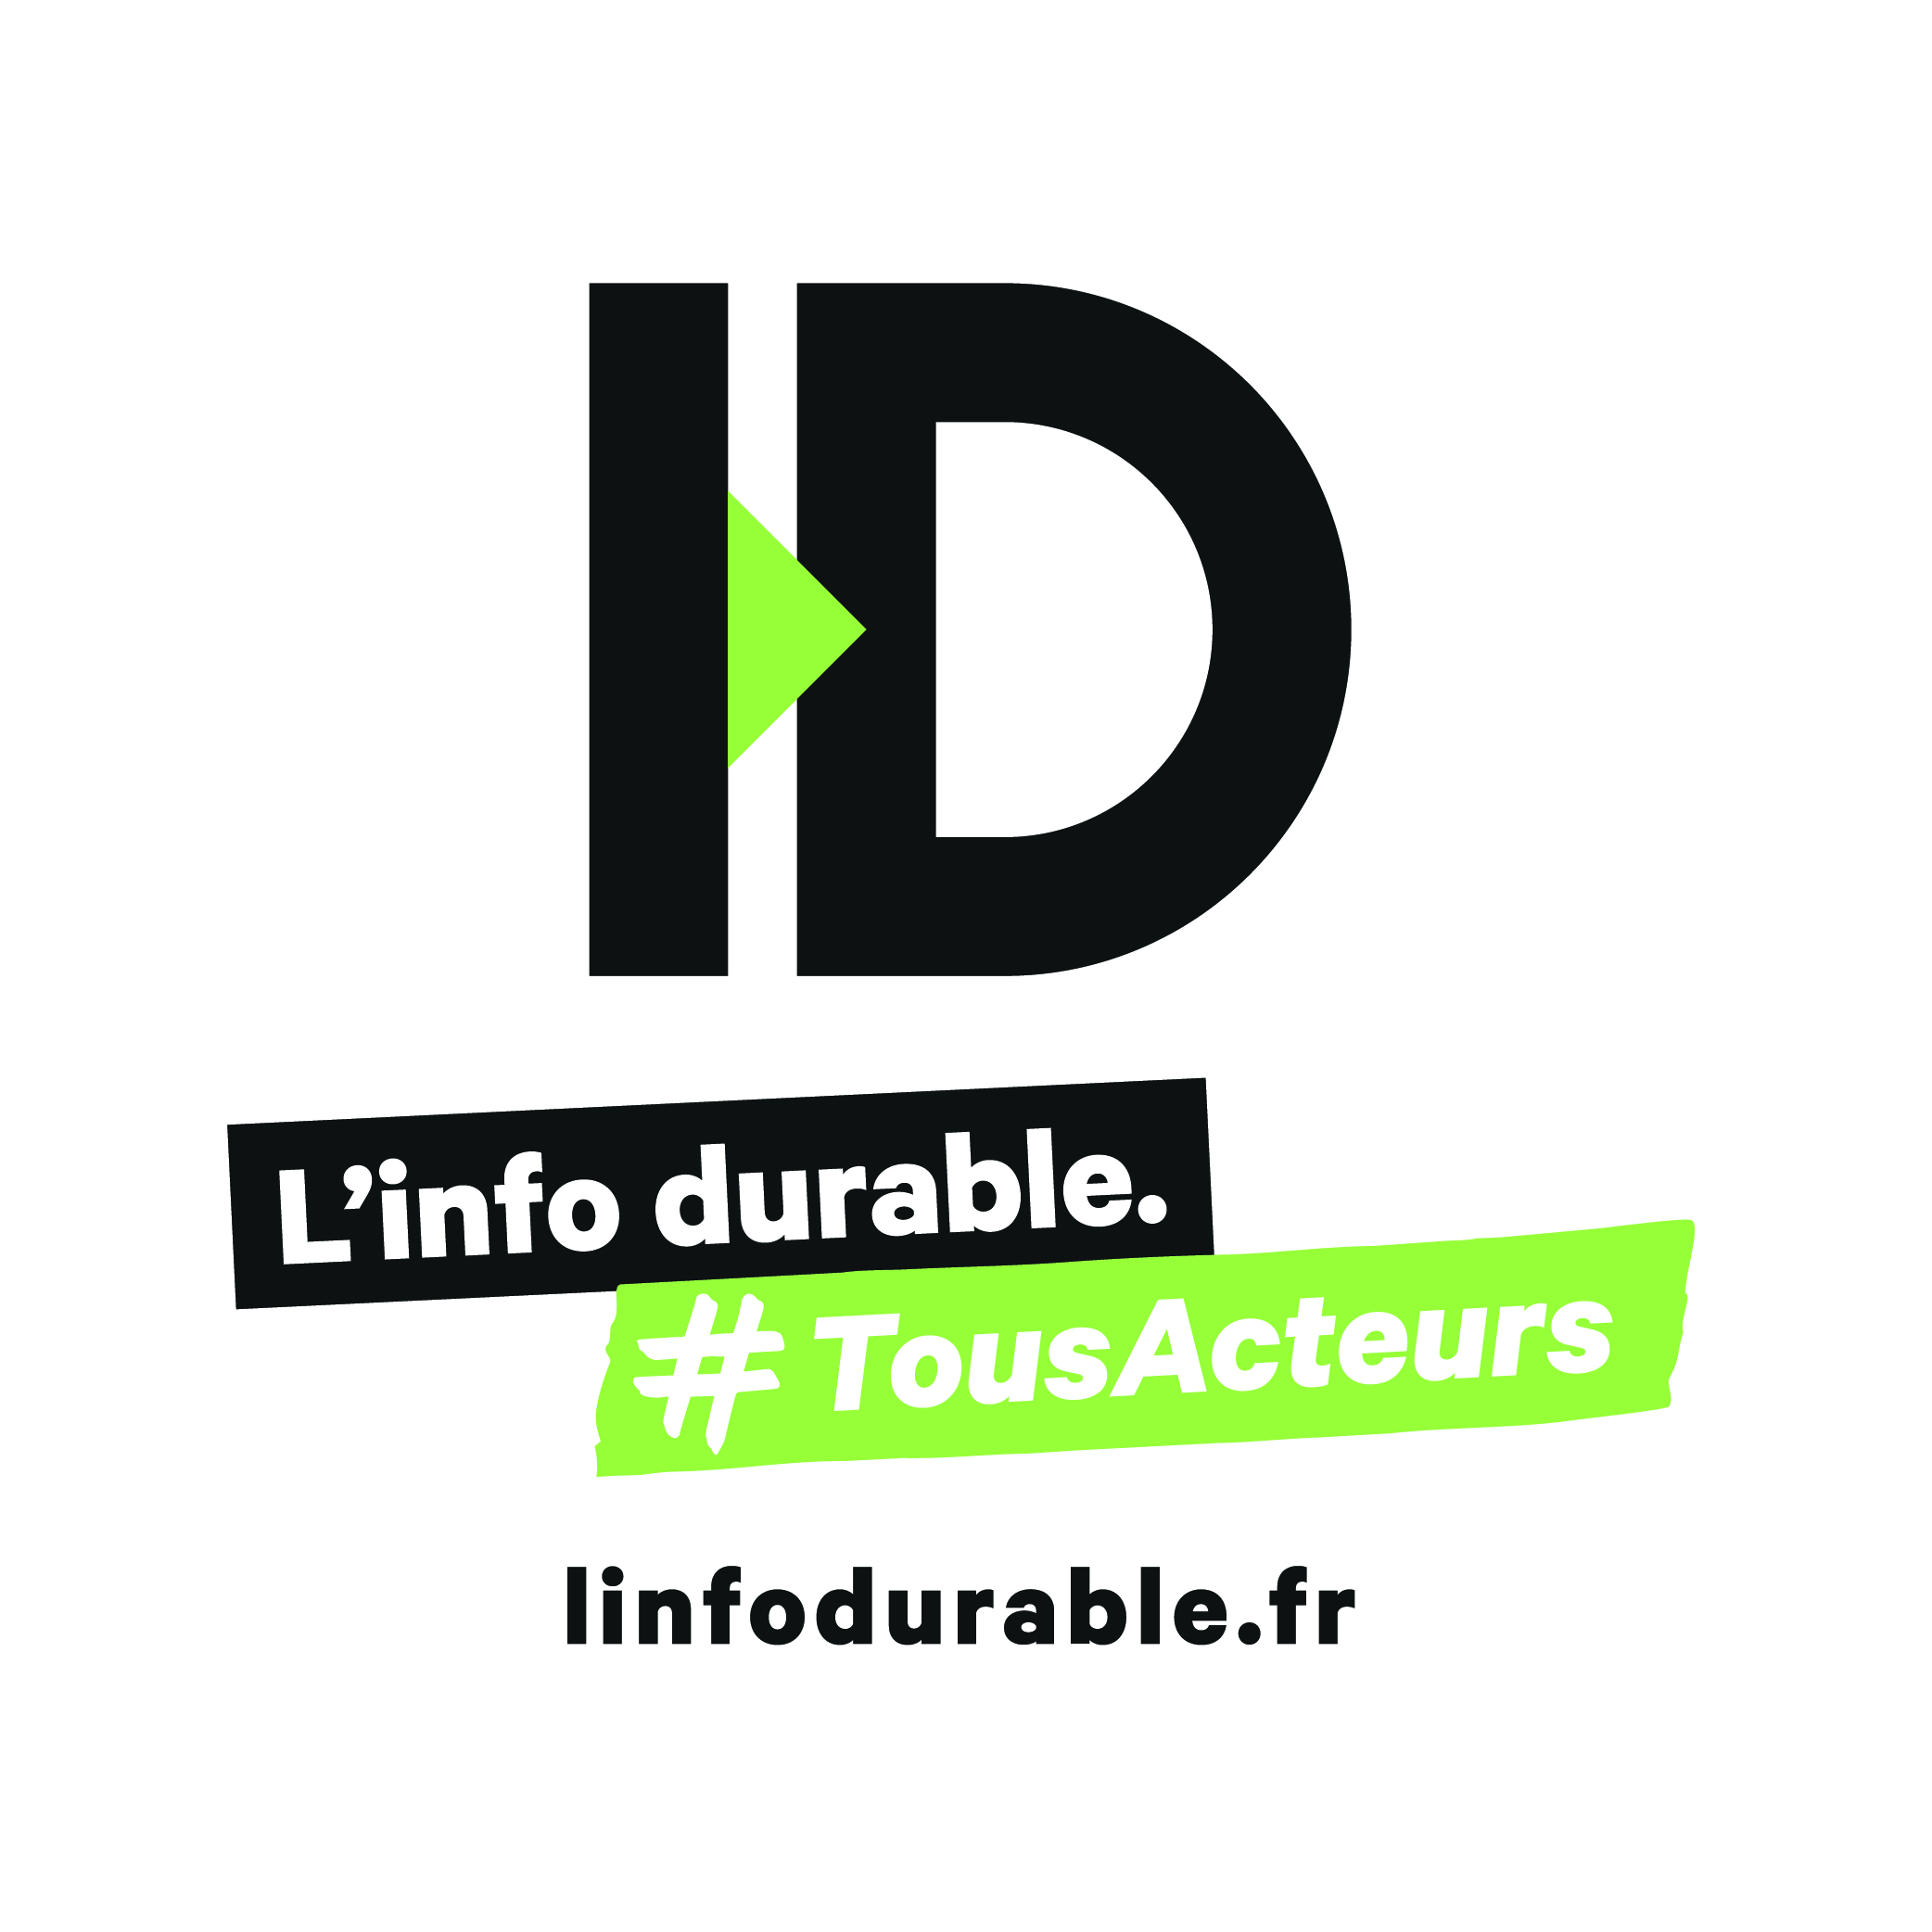 LINFO DURABLE